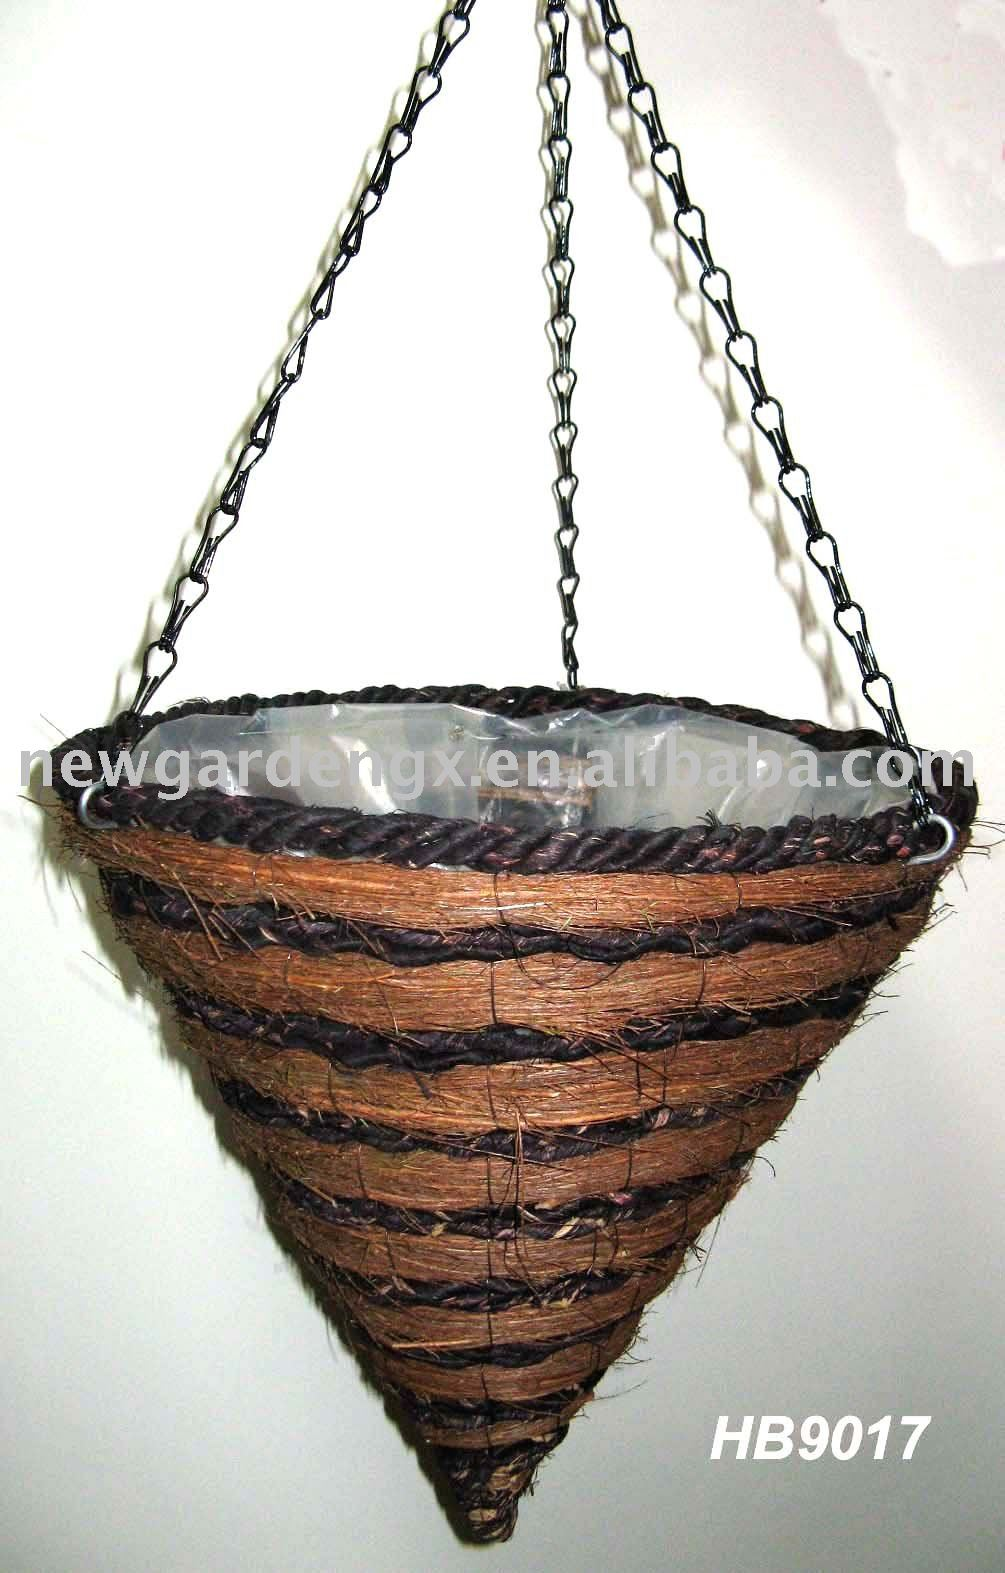 Hanging Flower Baskets Cone Shaped : Cone hanging basket rattan flower